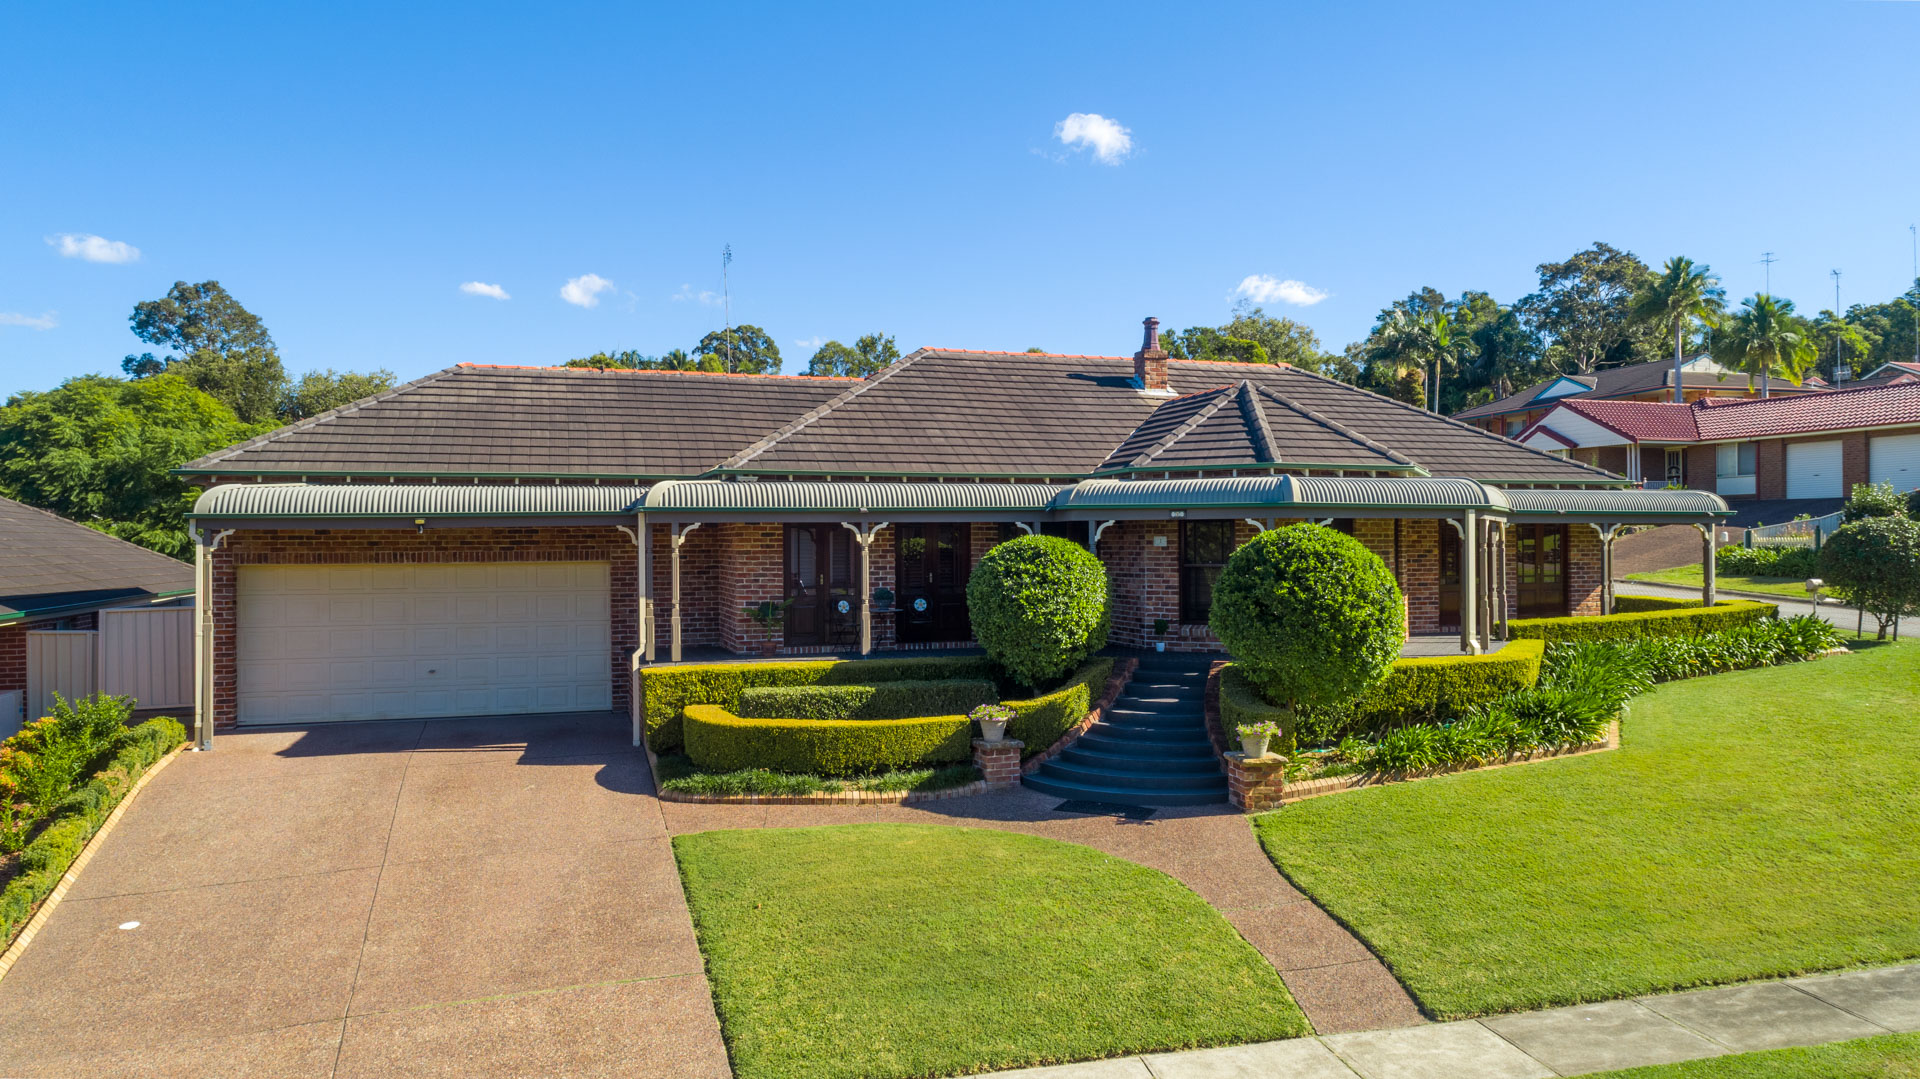 1 Staveley Crt  Lakelands Aerial 1 of 4 74800211